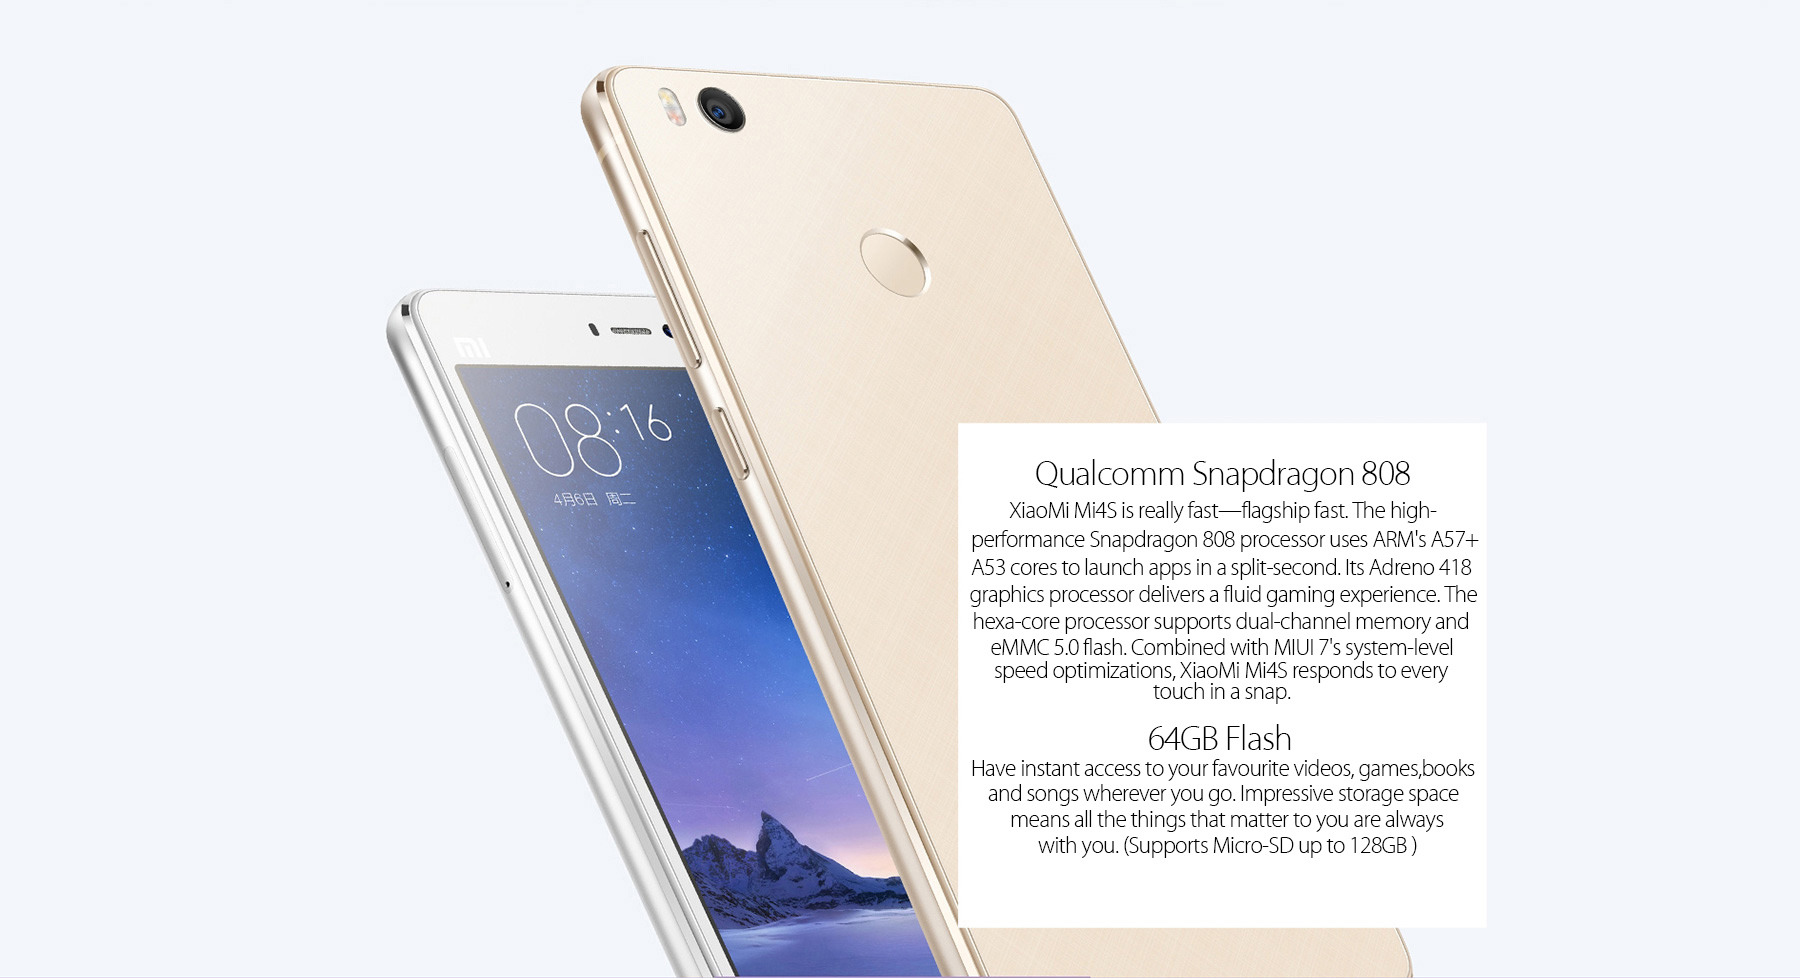 XiaoMi Mi4S 5.0 inch Android 5.1 4G Smartphone Snapdragon 808 64bit Hexa Core Fingerprint ID 3GB RAM 64GB ROM 13.0MP + 5.0MP Cameras Quick Charge Type-C